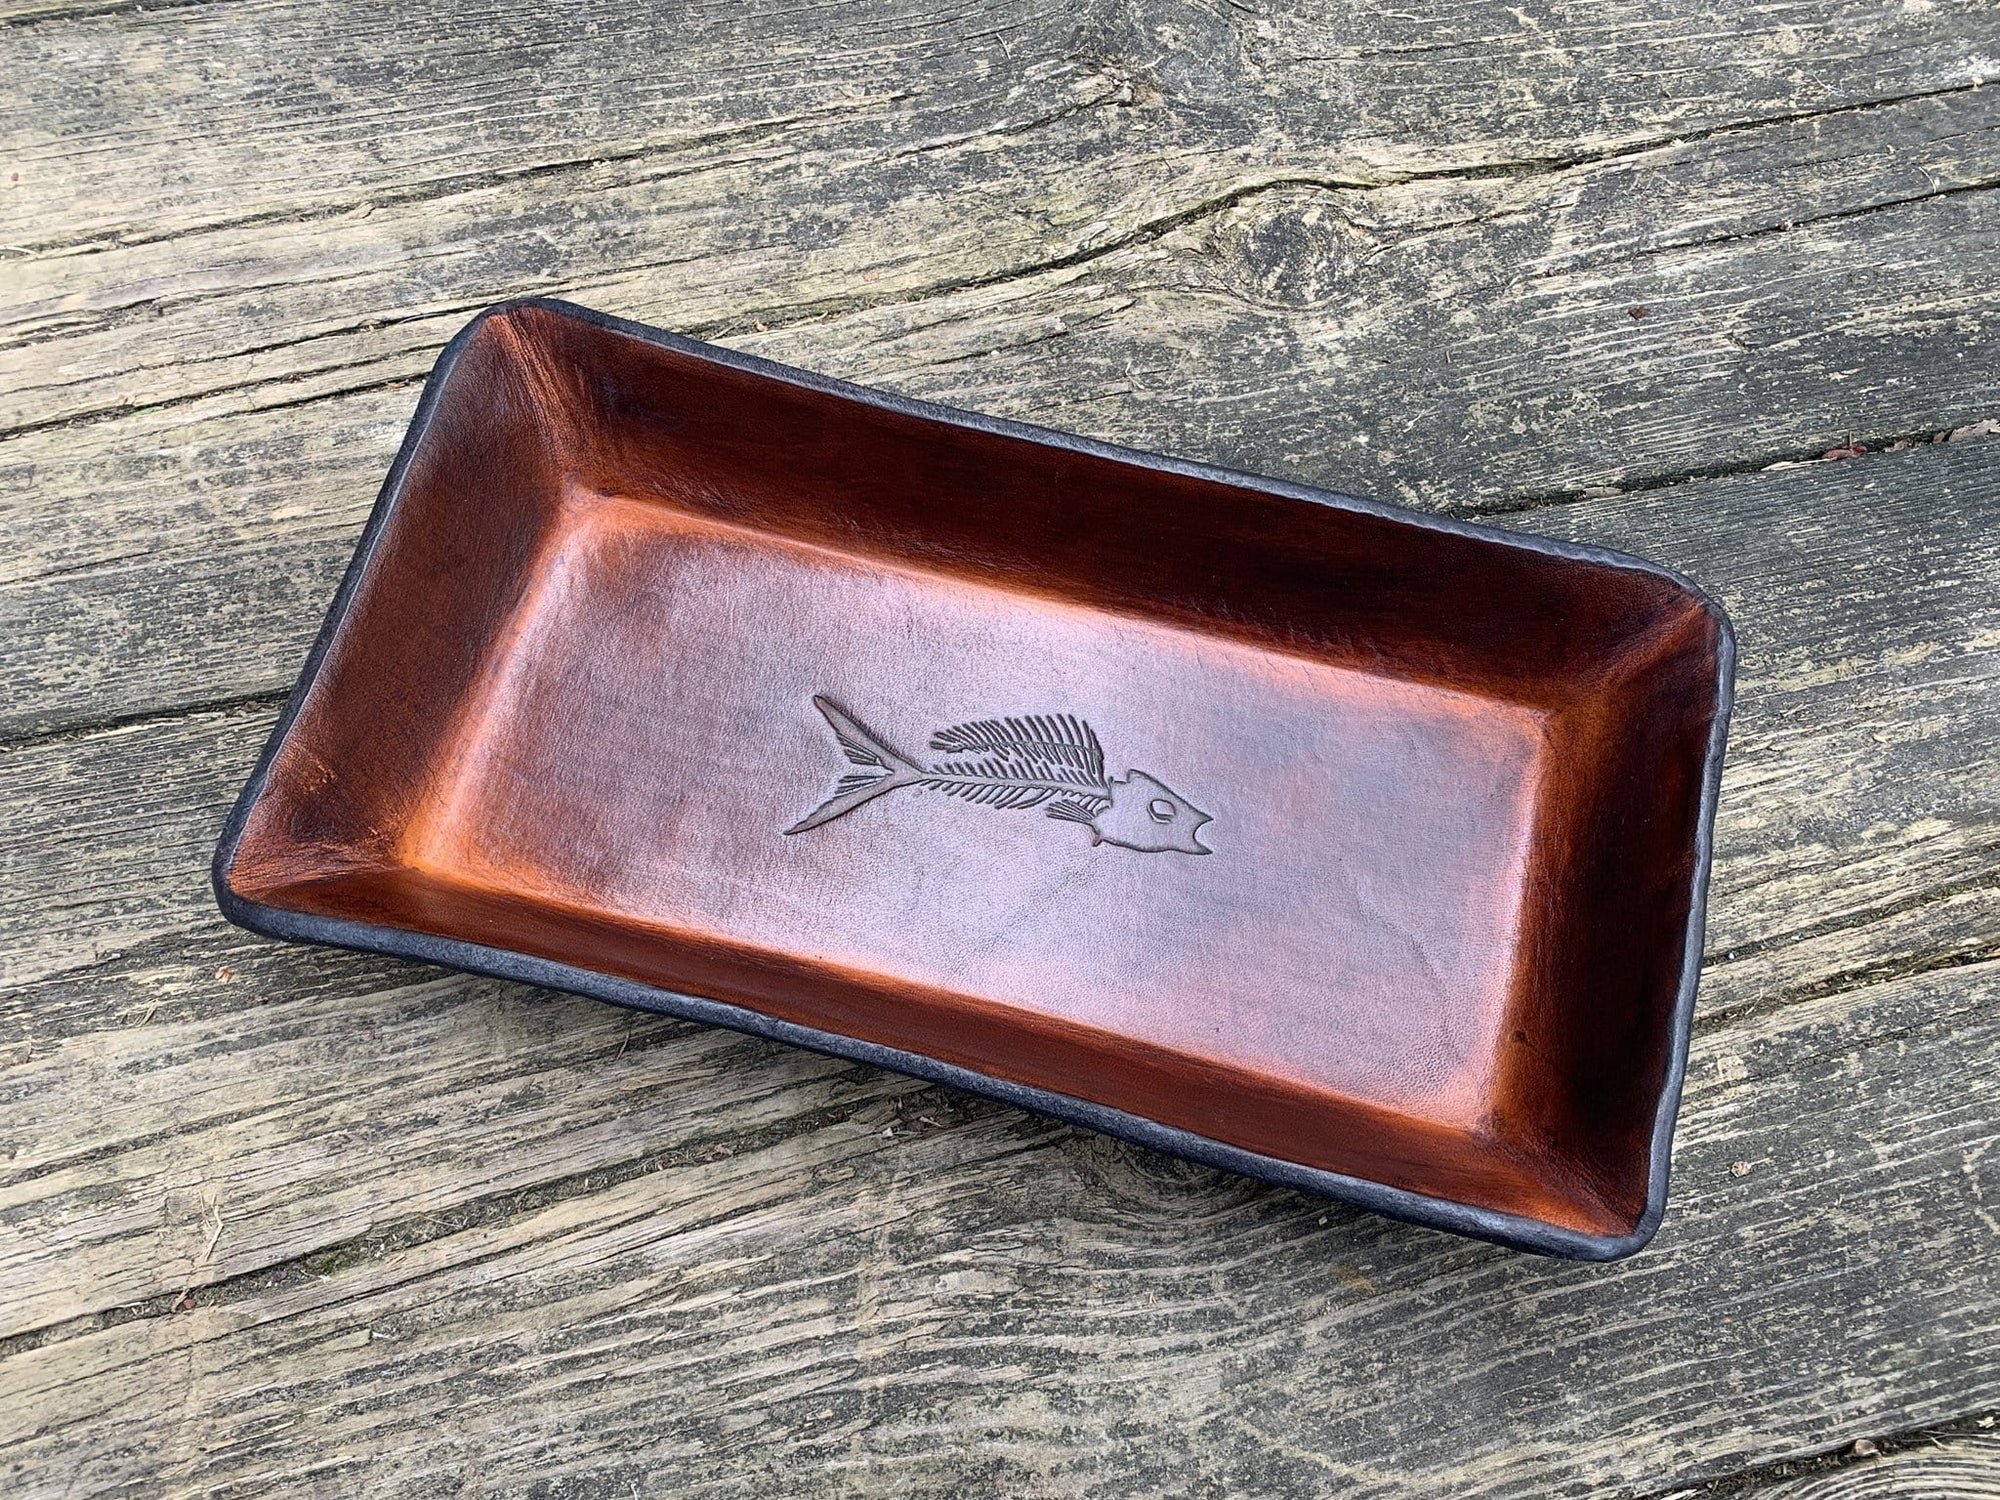 Embossed leather desk valet. fish fossil. Timber brown color.